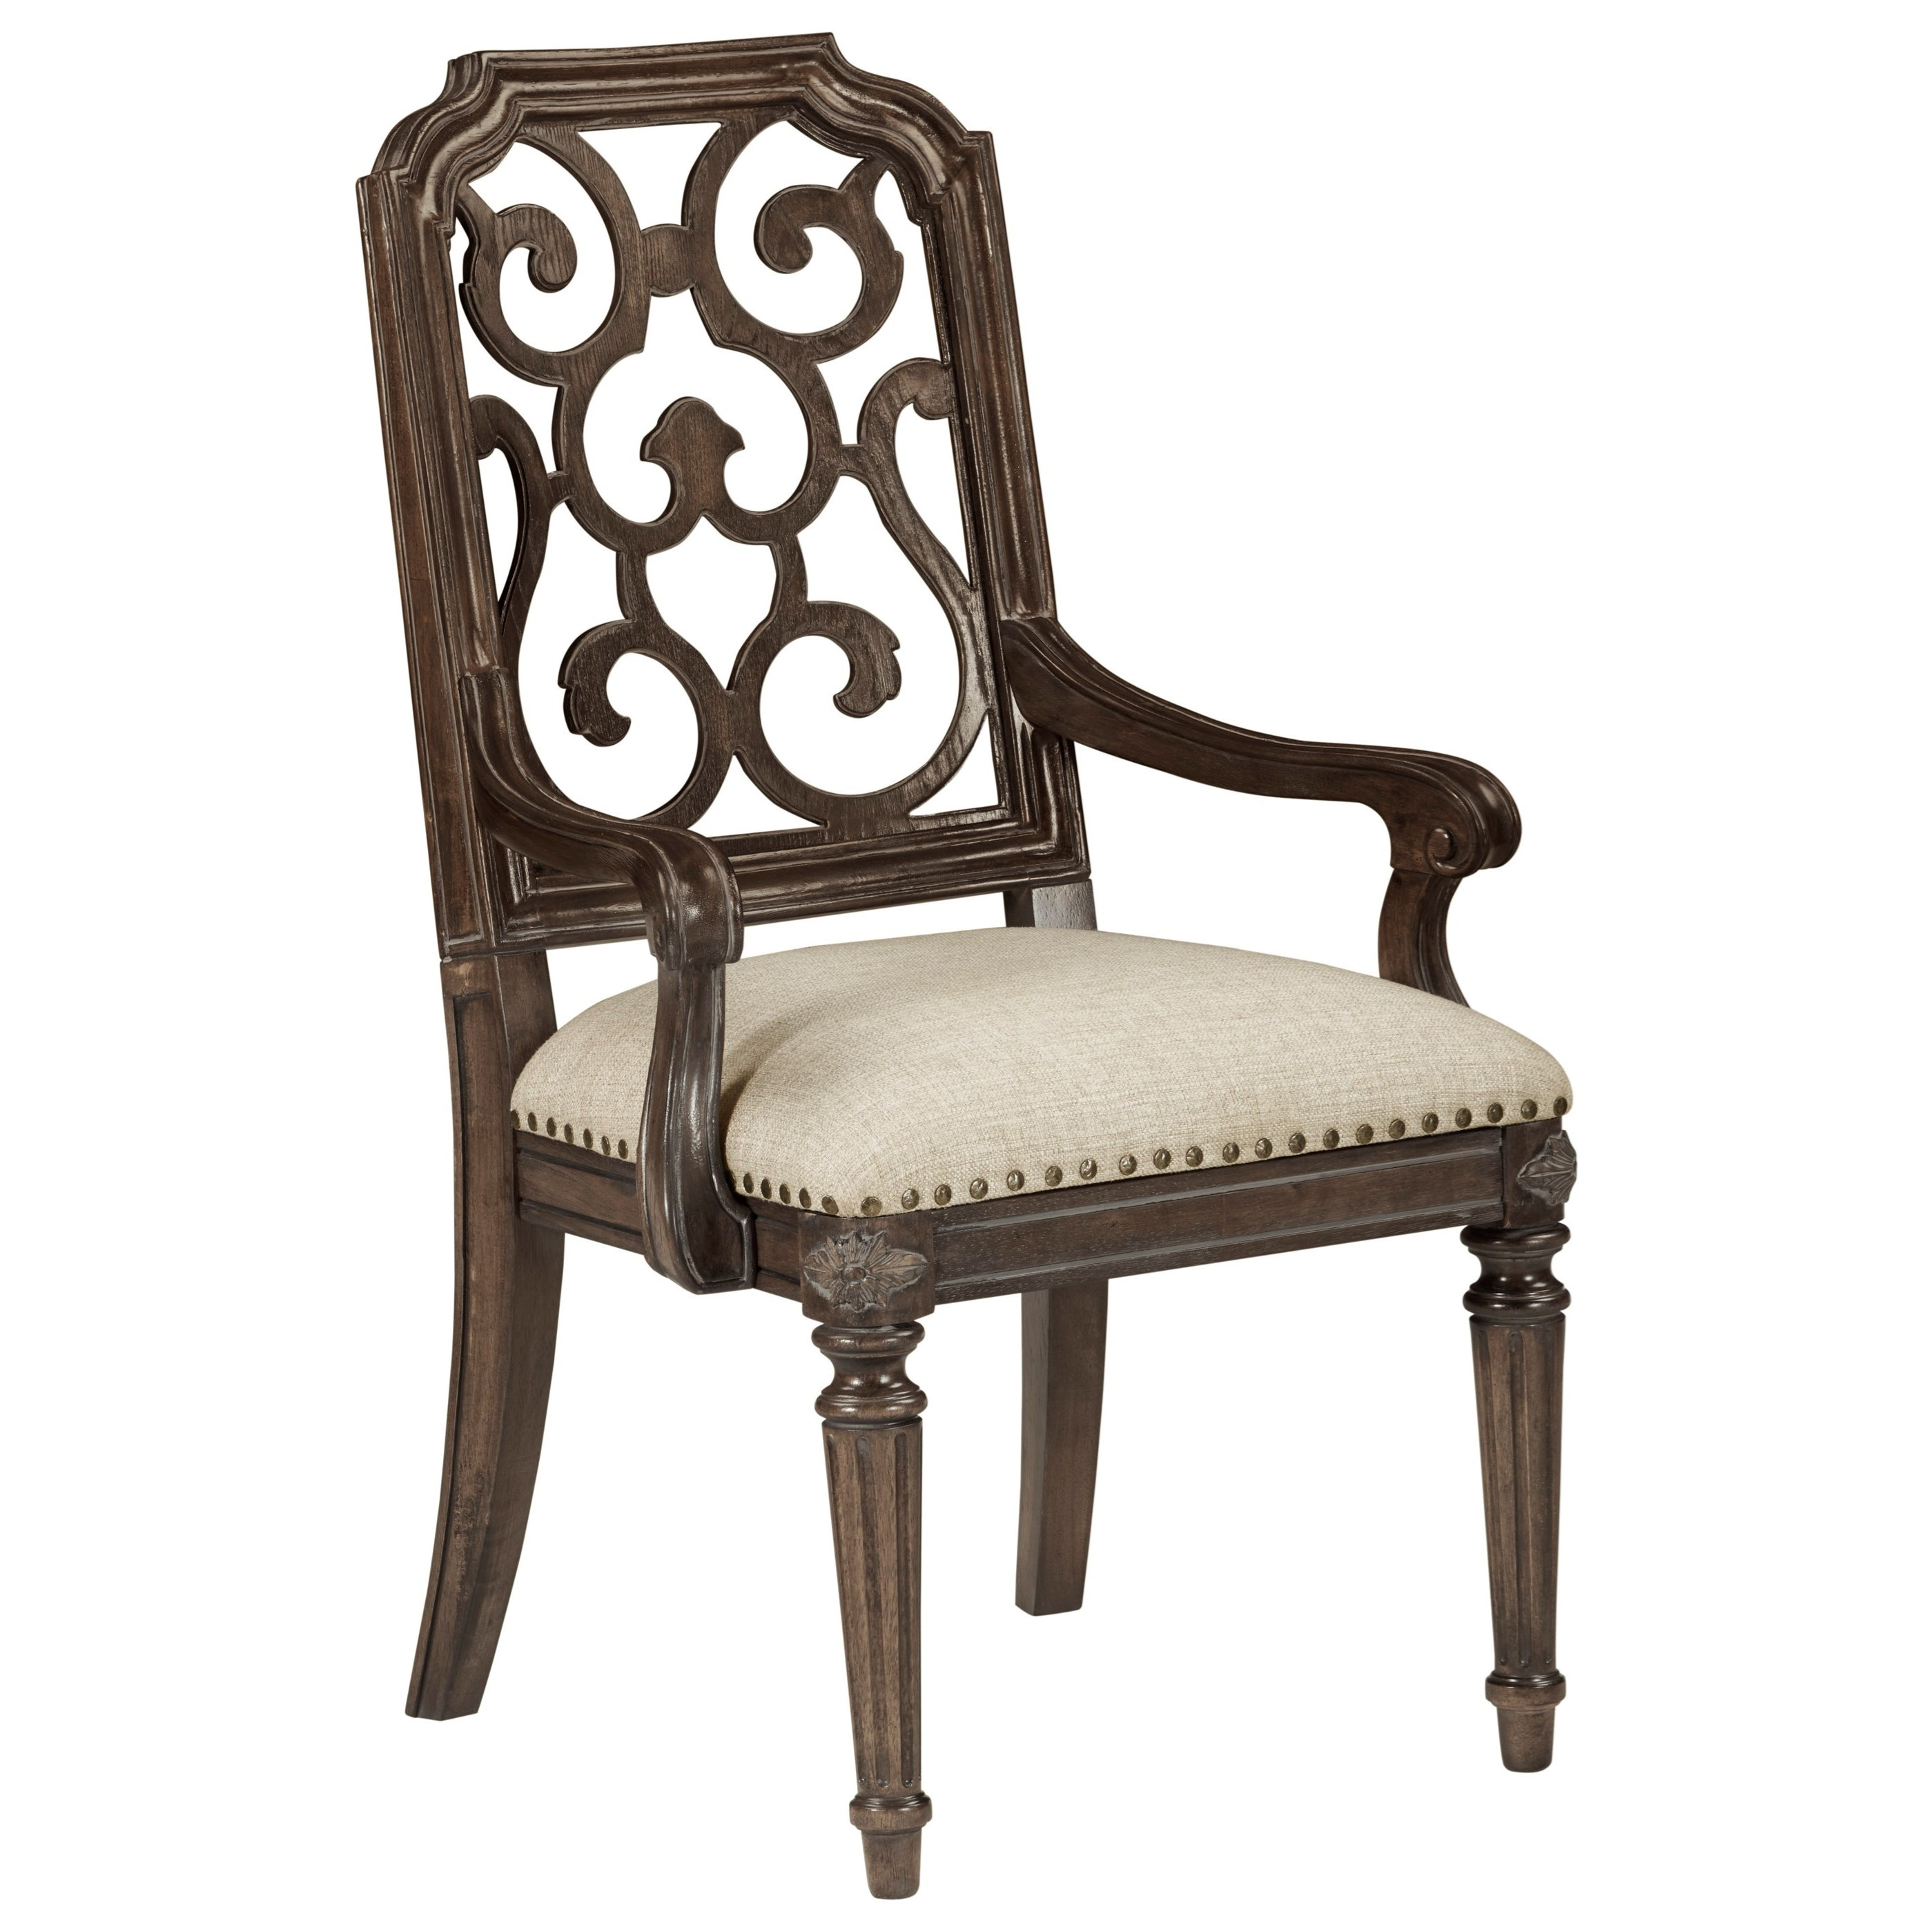 Vintage Salvage  Tristan Fret Back Arm Chair  by A.R.T. Furniture Inc at Home Collections Furniture